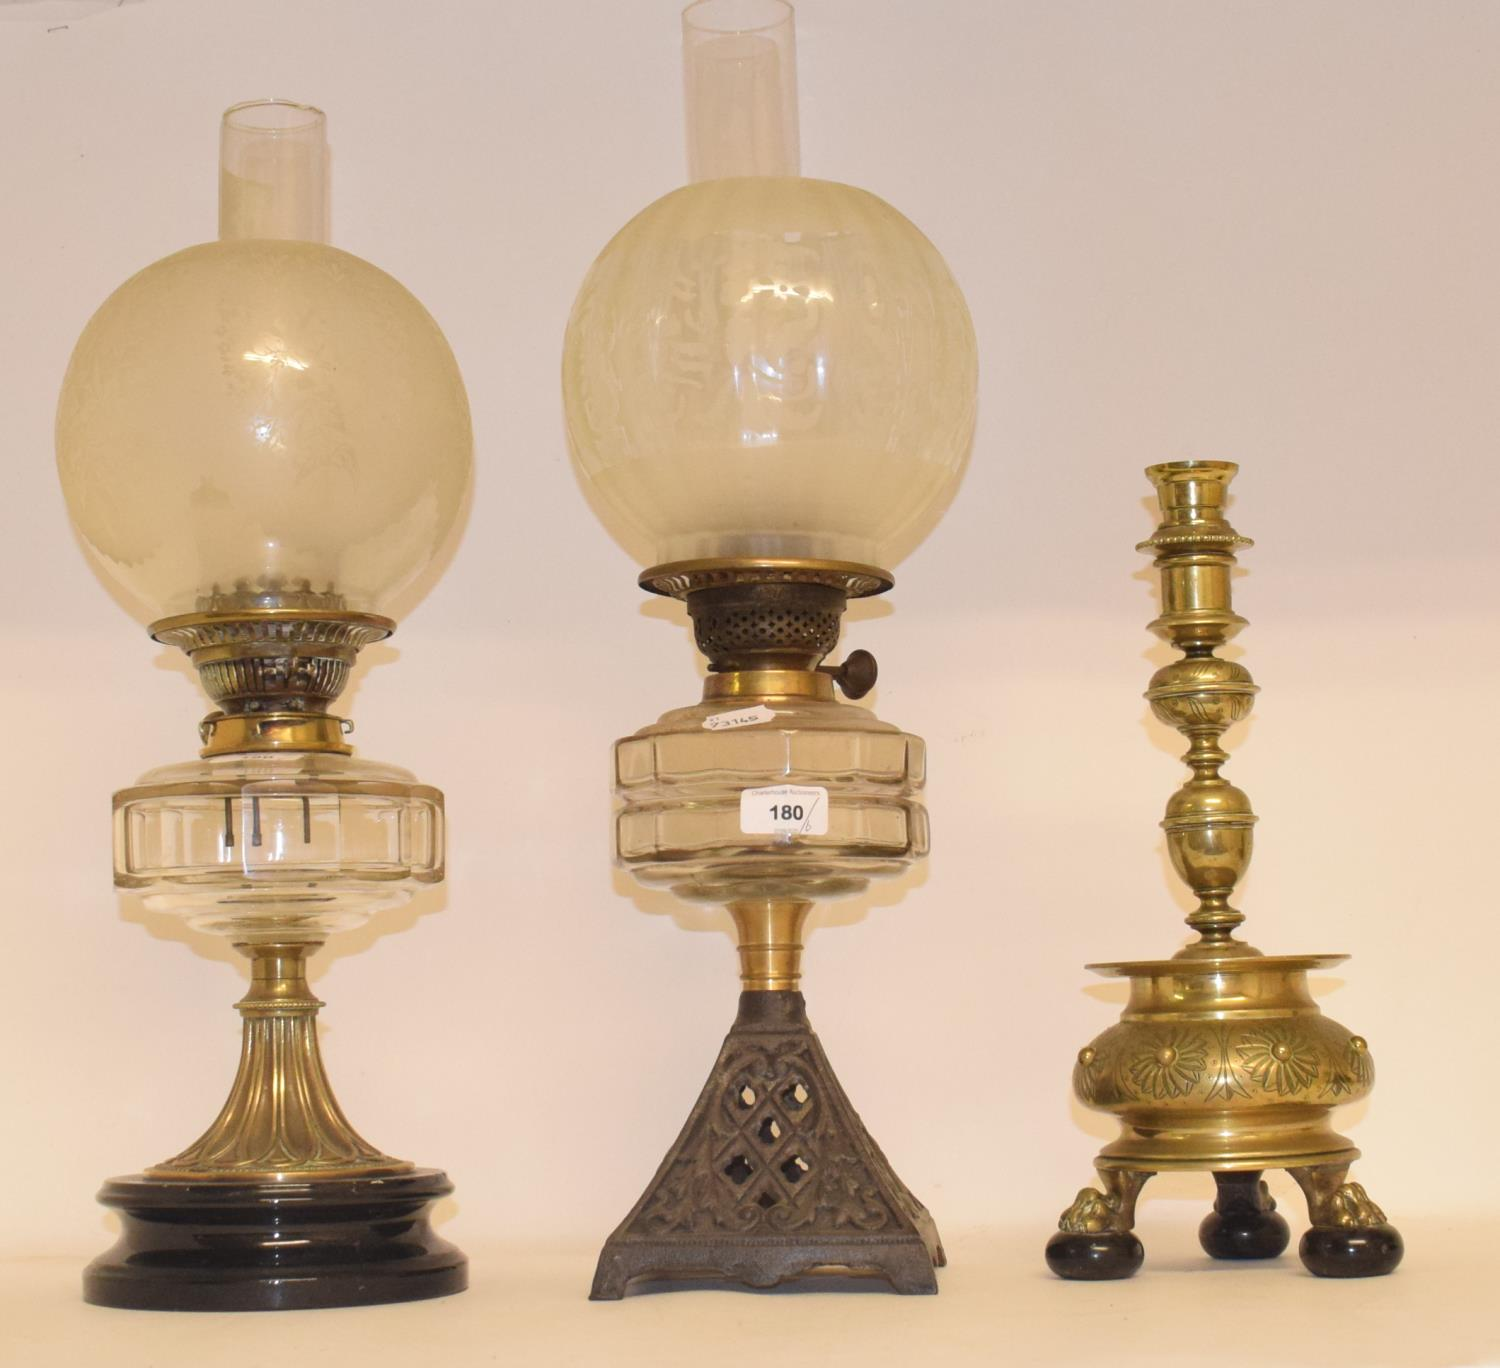 Lot 180 - A late 19th/early 20th century brass oil lamp, with engraved glass shade, four other oil lamps and a